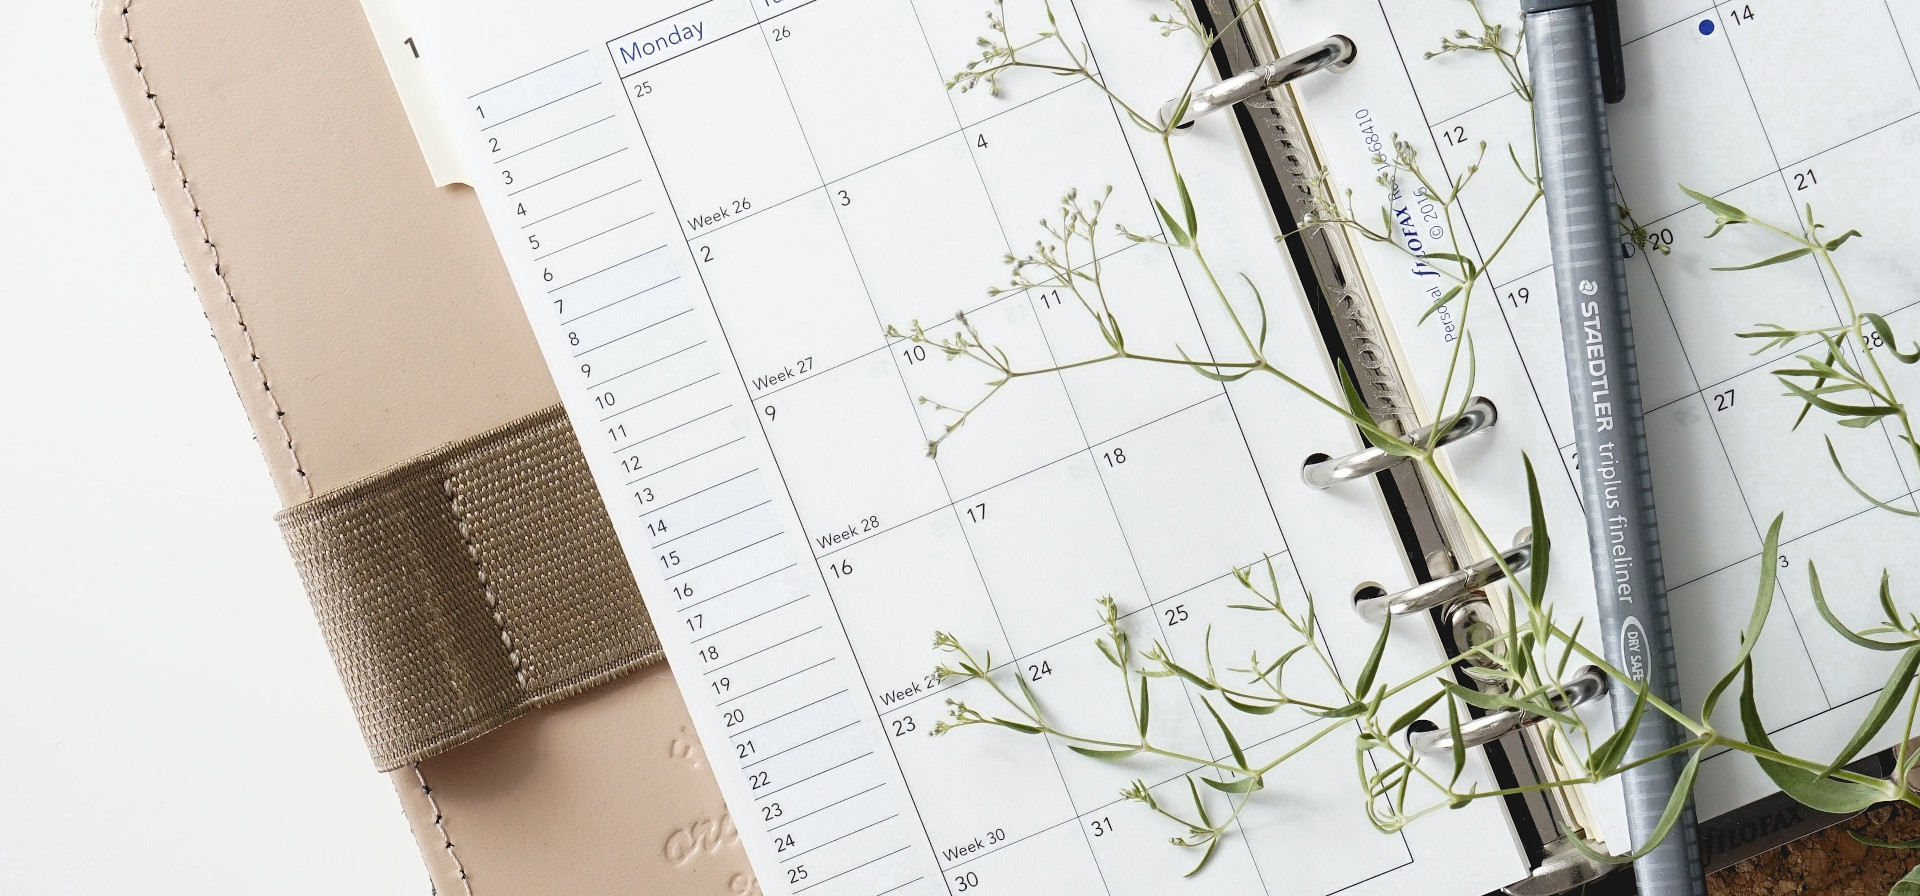 Features And Special Events We have some special dates arranged for you throughout the year, seasonal and occasional and big discount days get the news you want on this blog